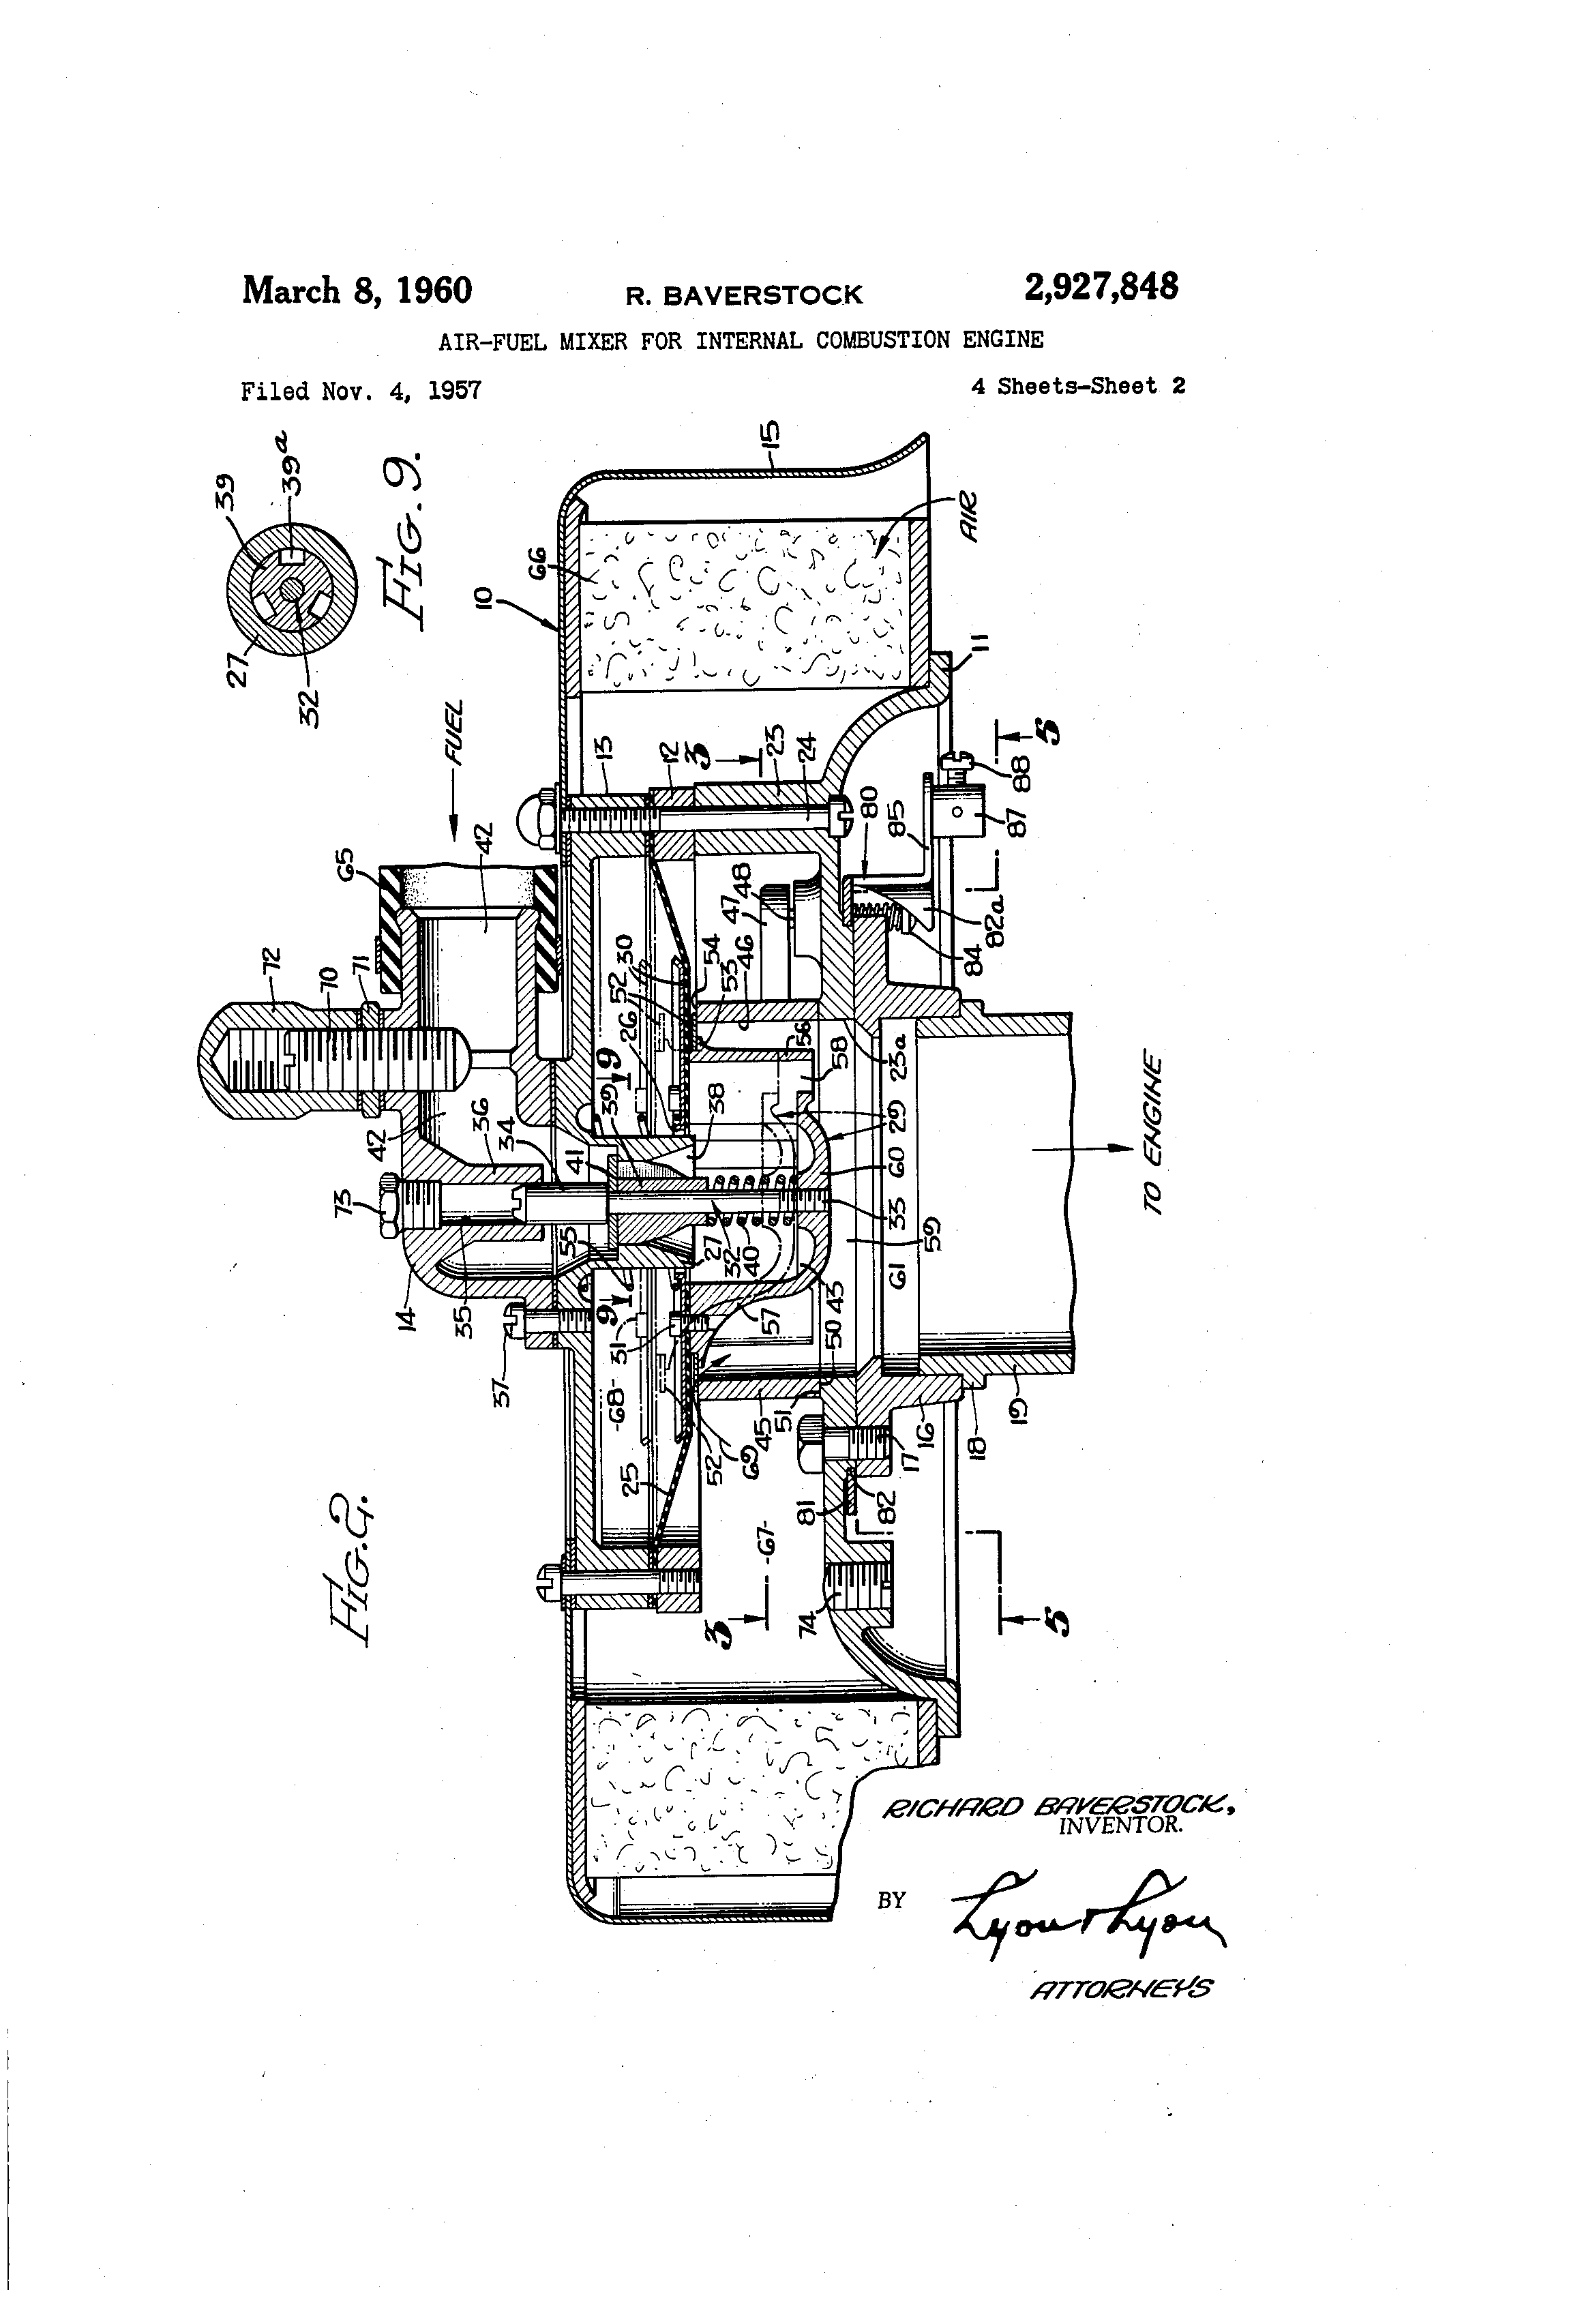 patent us2927848 - air-fuel mixer for internal combustion engine